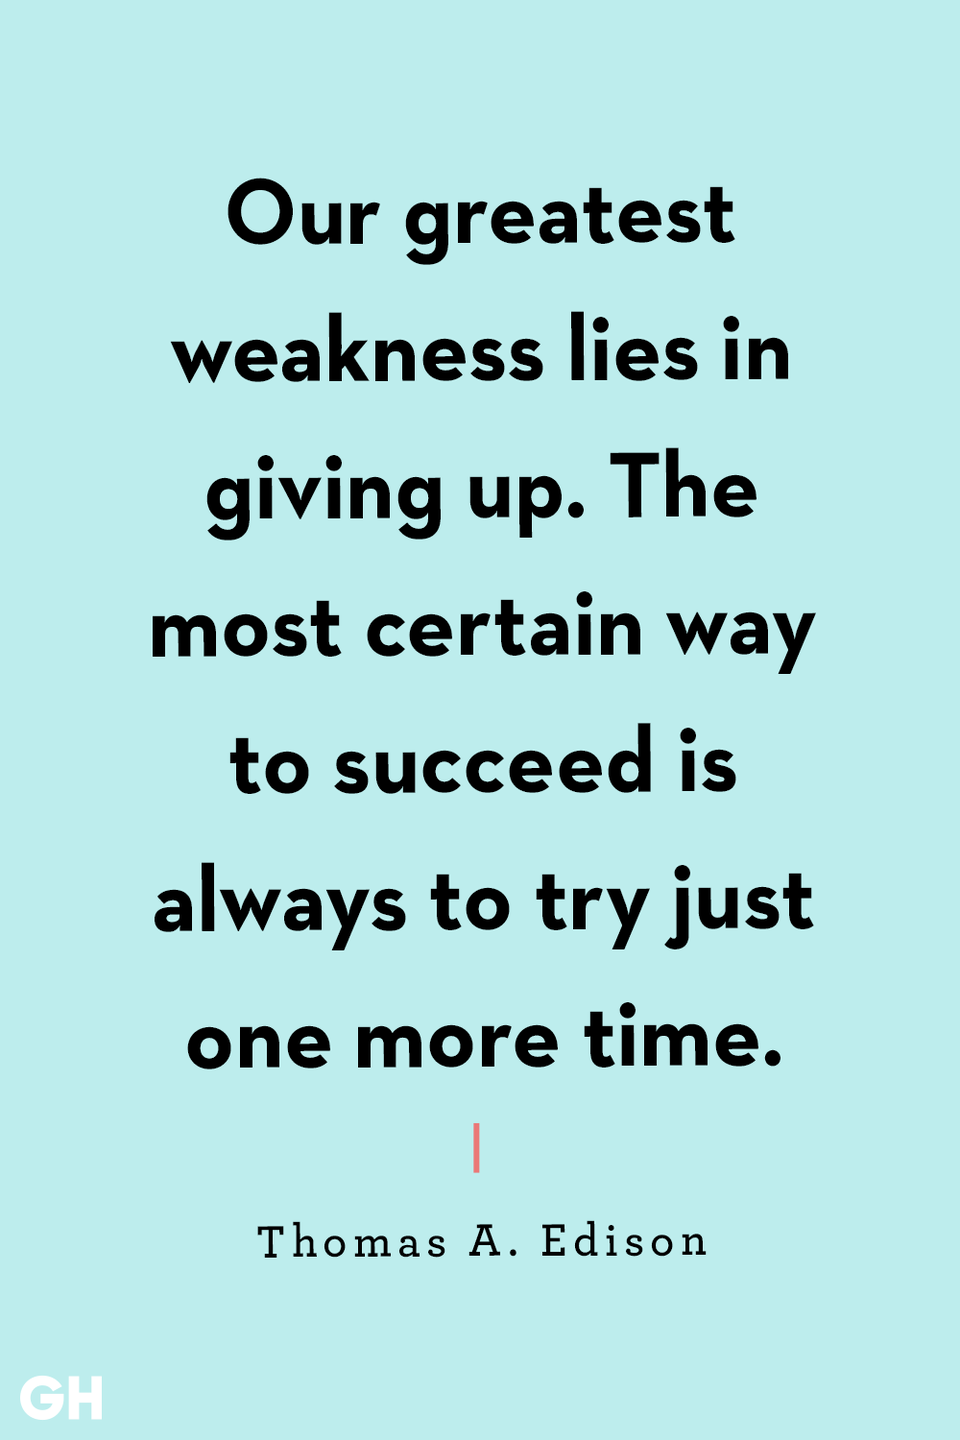 <p>Our greatest weakness lies in giving up. The most certain way to succeed is always to try just one more time.</p>